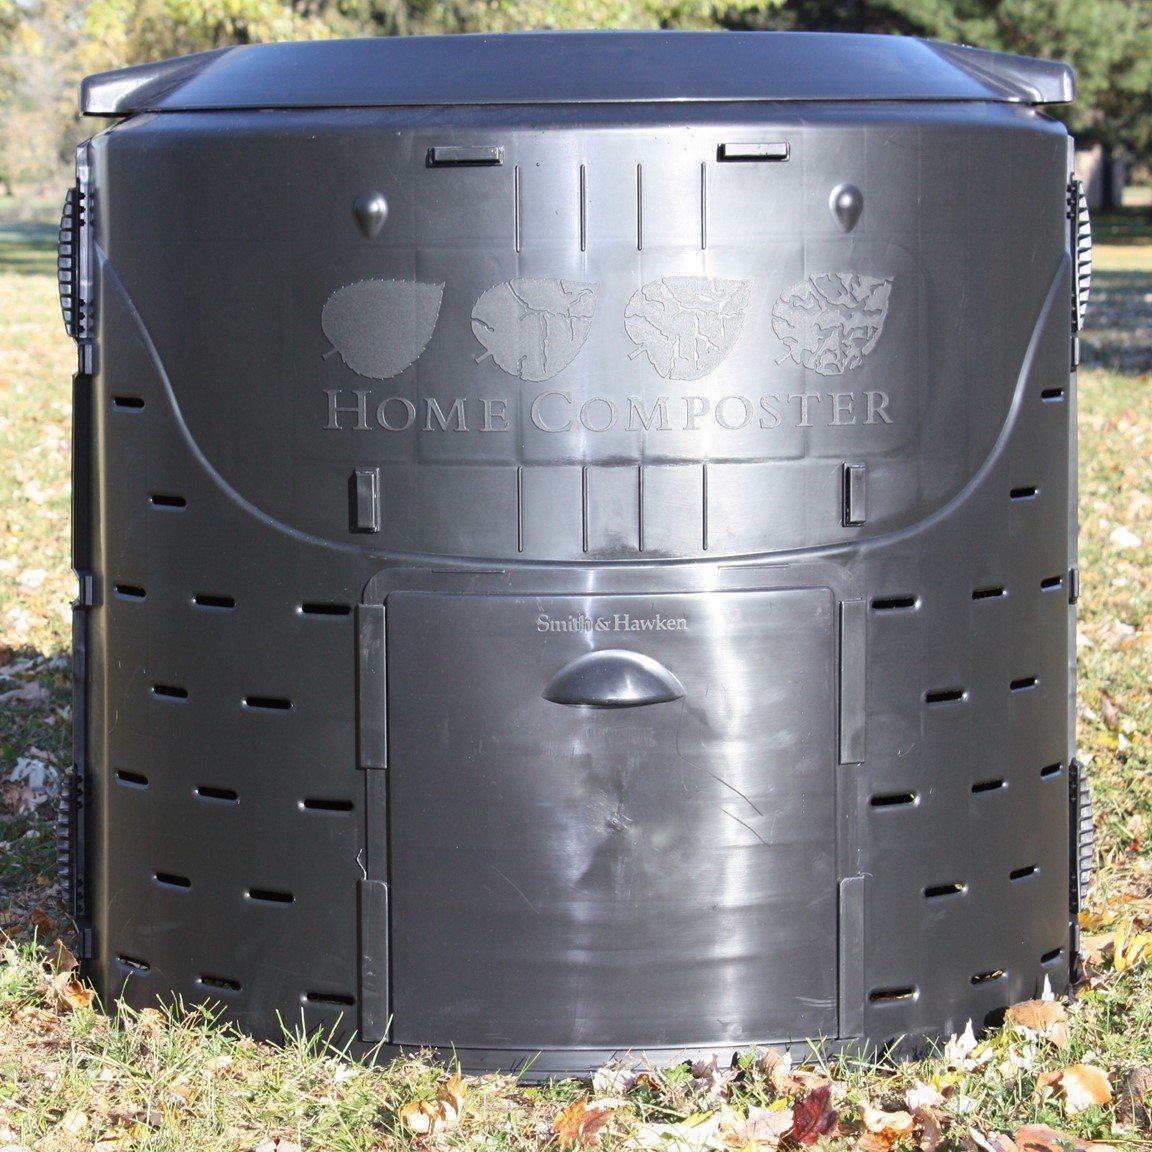 Home Composter -  Shipment Arriving April 15th